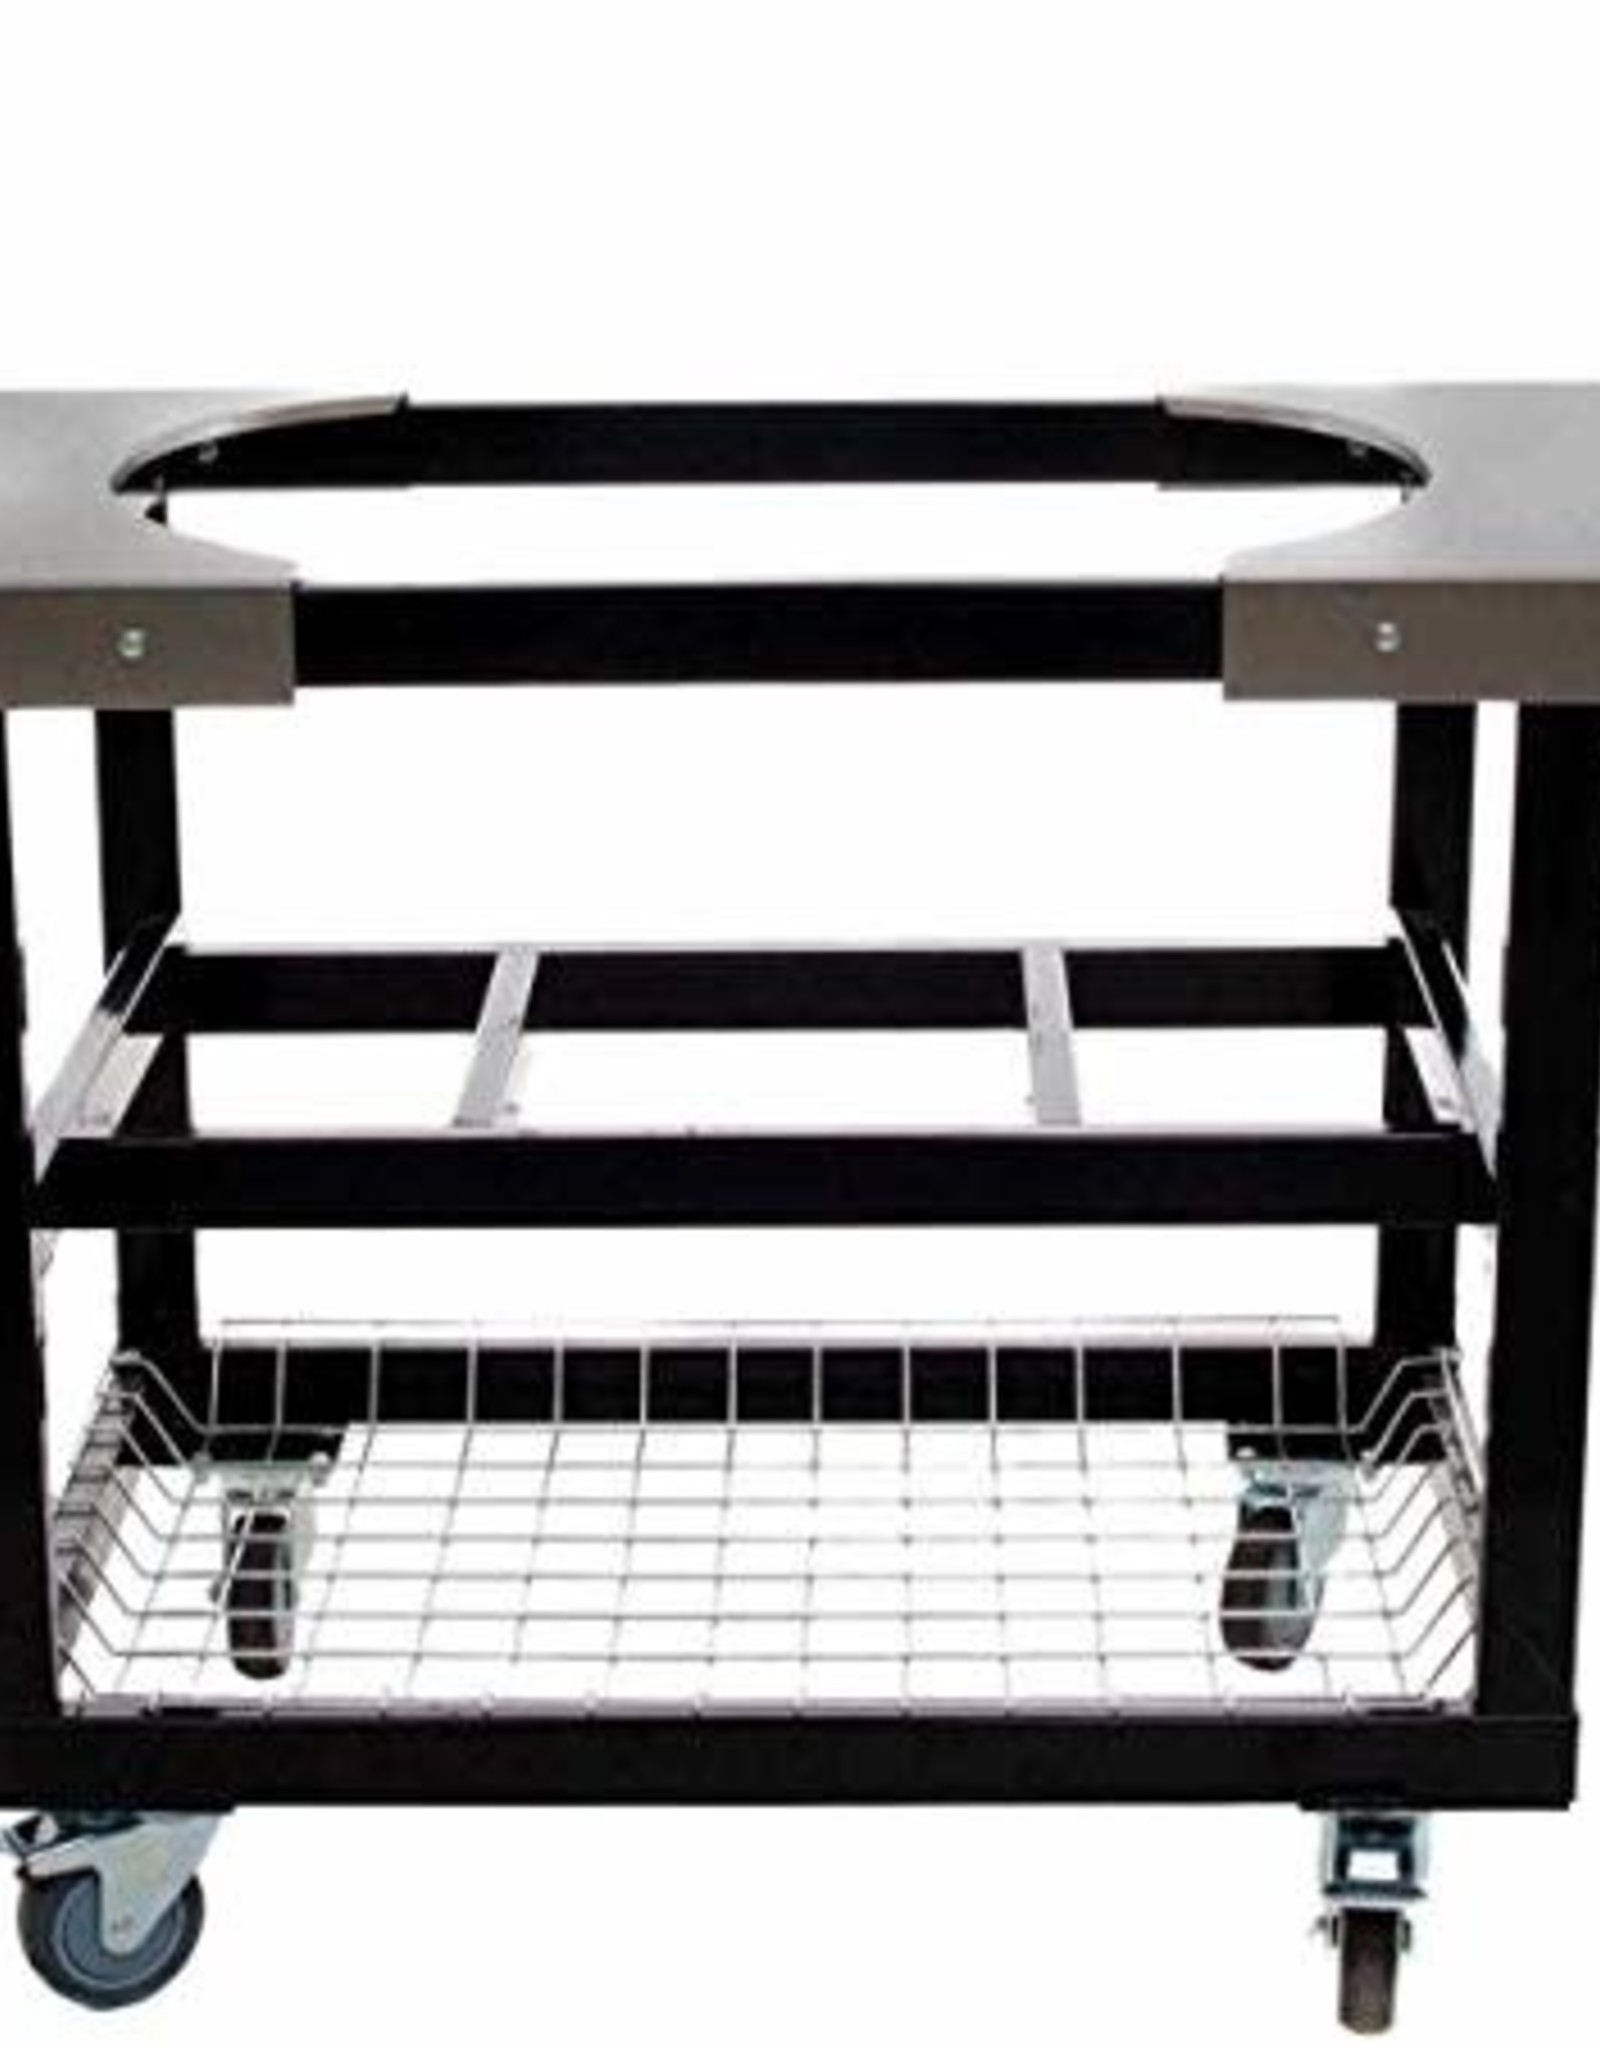 Primo Ceramic Grills Primo Steel Cart With Stainless Steel Side Tables For Oval XL / Oval Large #370